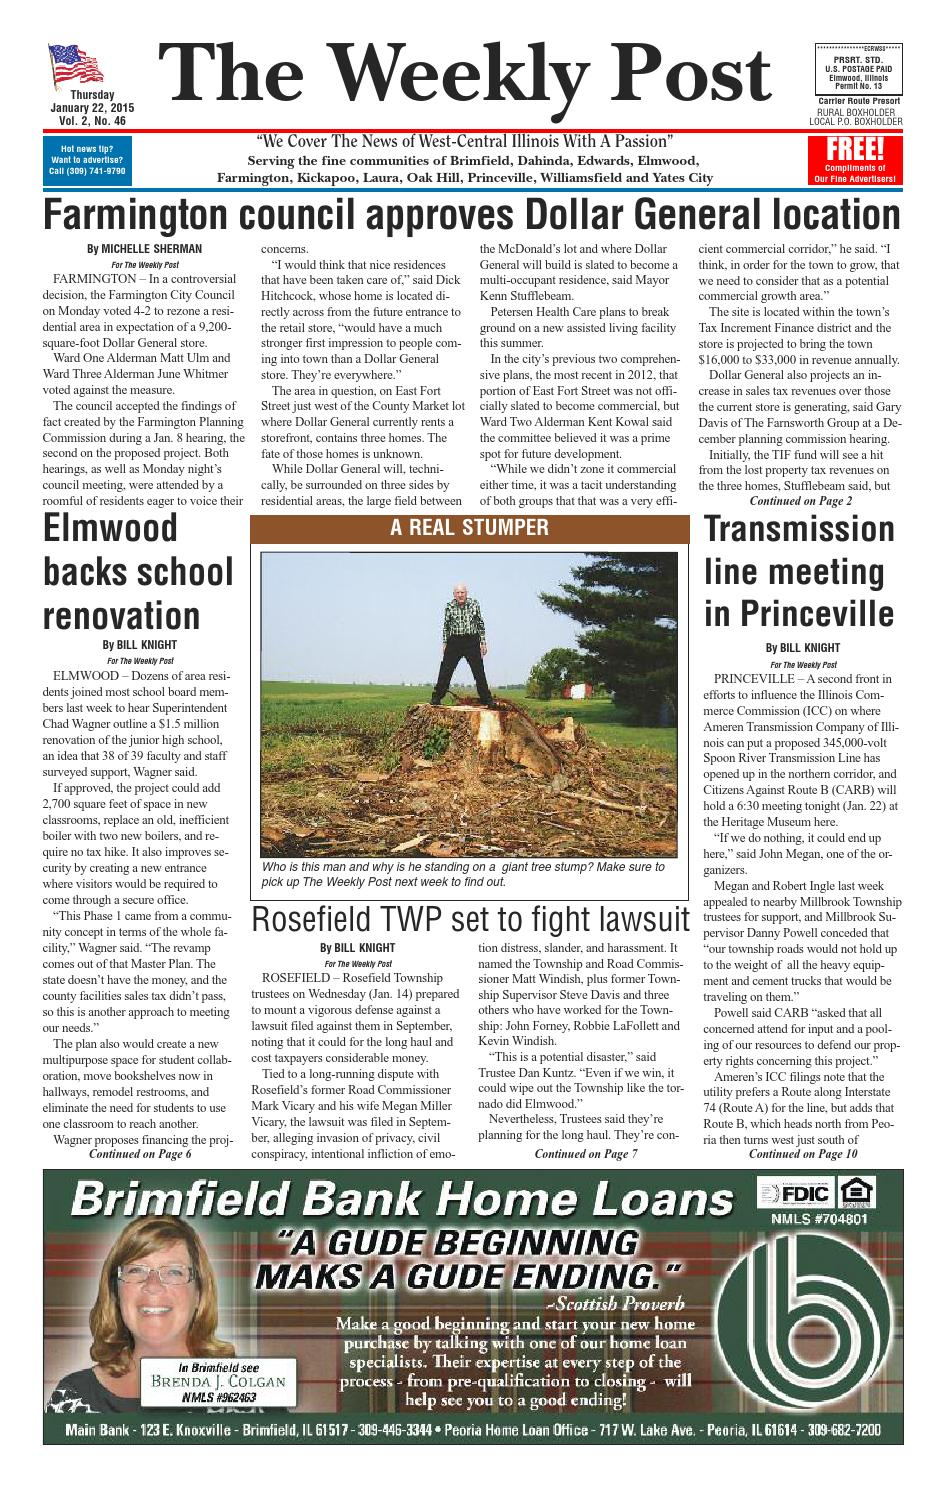 The Weekly Post 1/22/15 by The Weekly Post - issuu